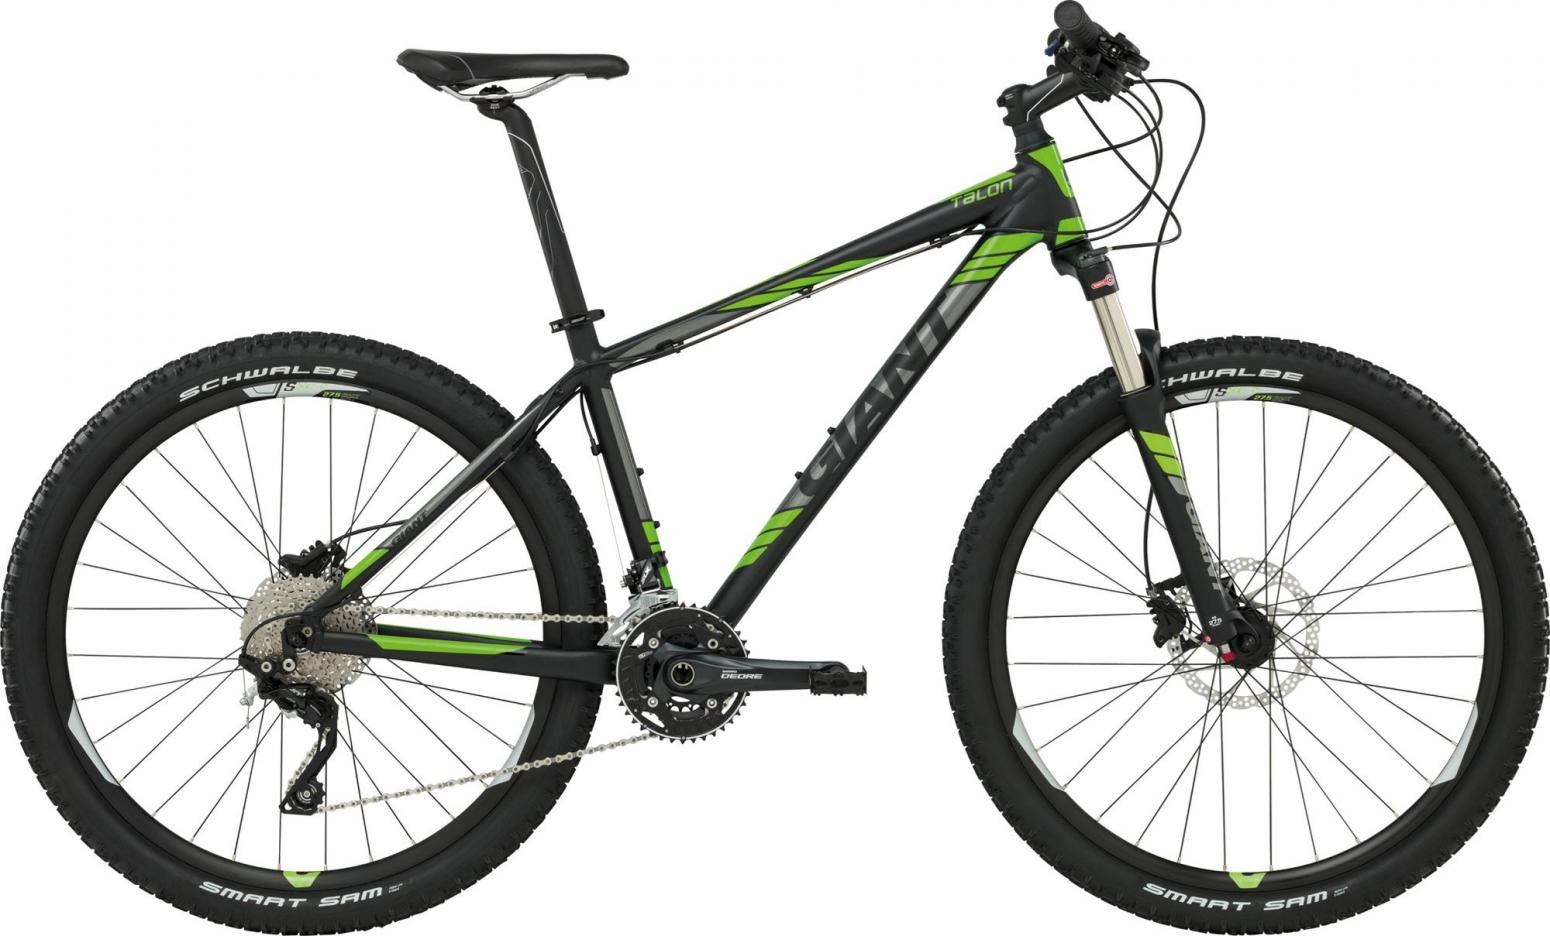 Giant MTB Trail/X-Country Talon 27.5 1 LTD 2016